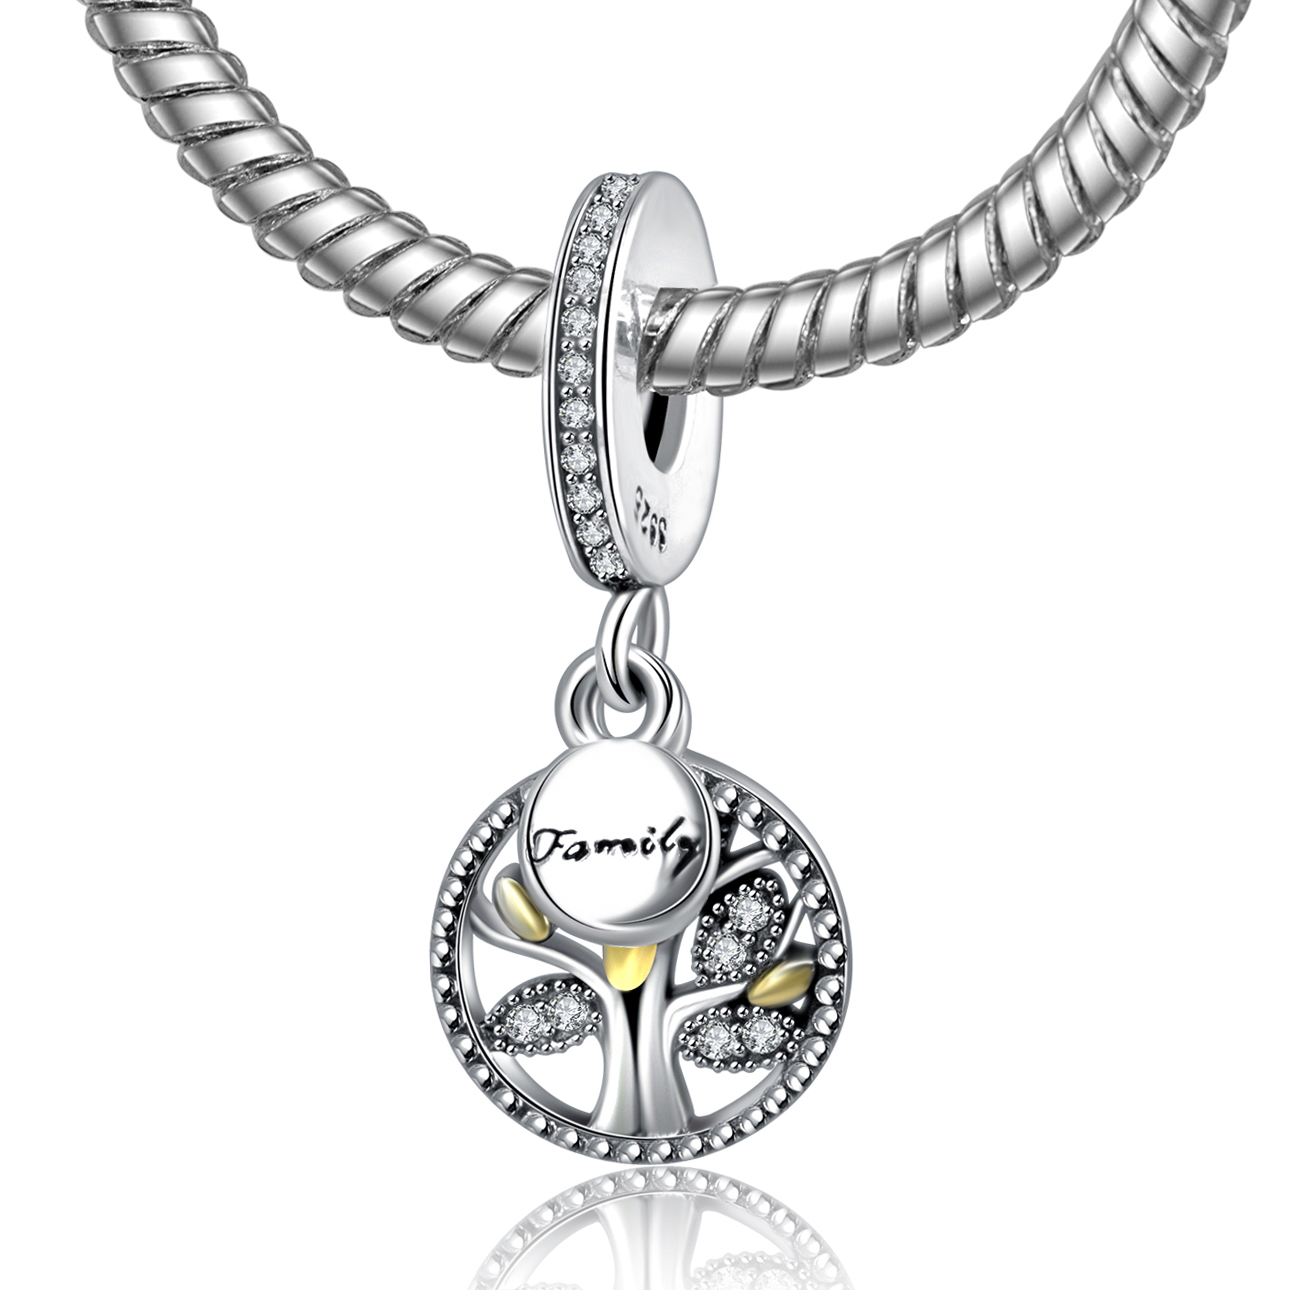 2017 Authentic 925 Sterling Silver Family Tree Charm Beads